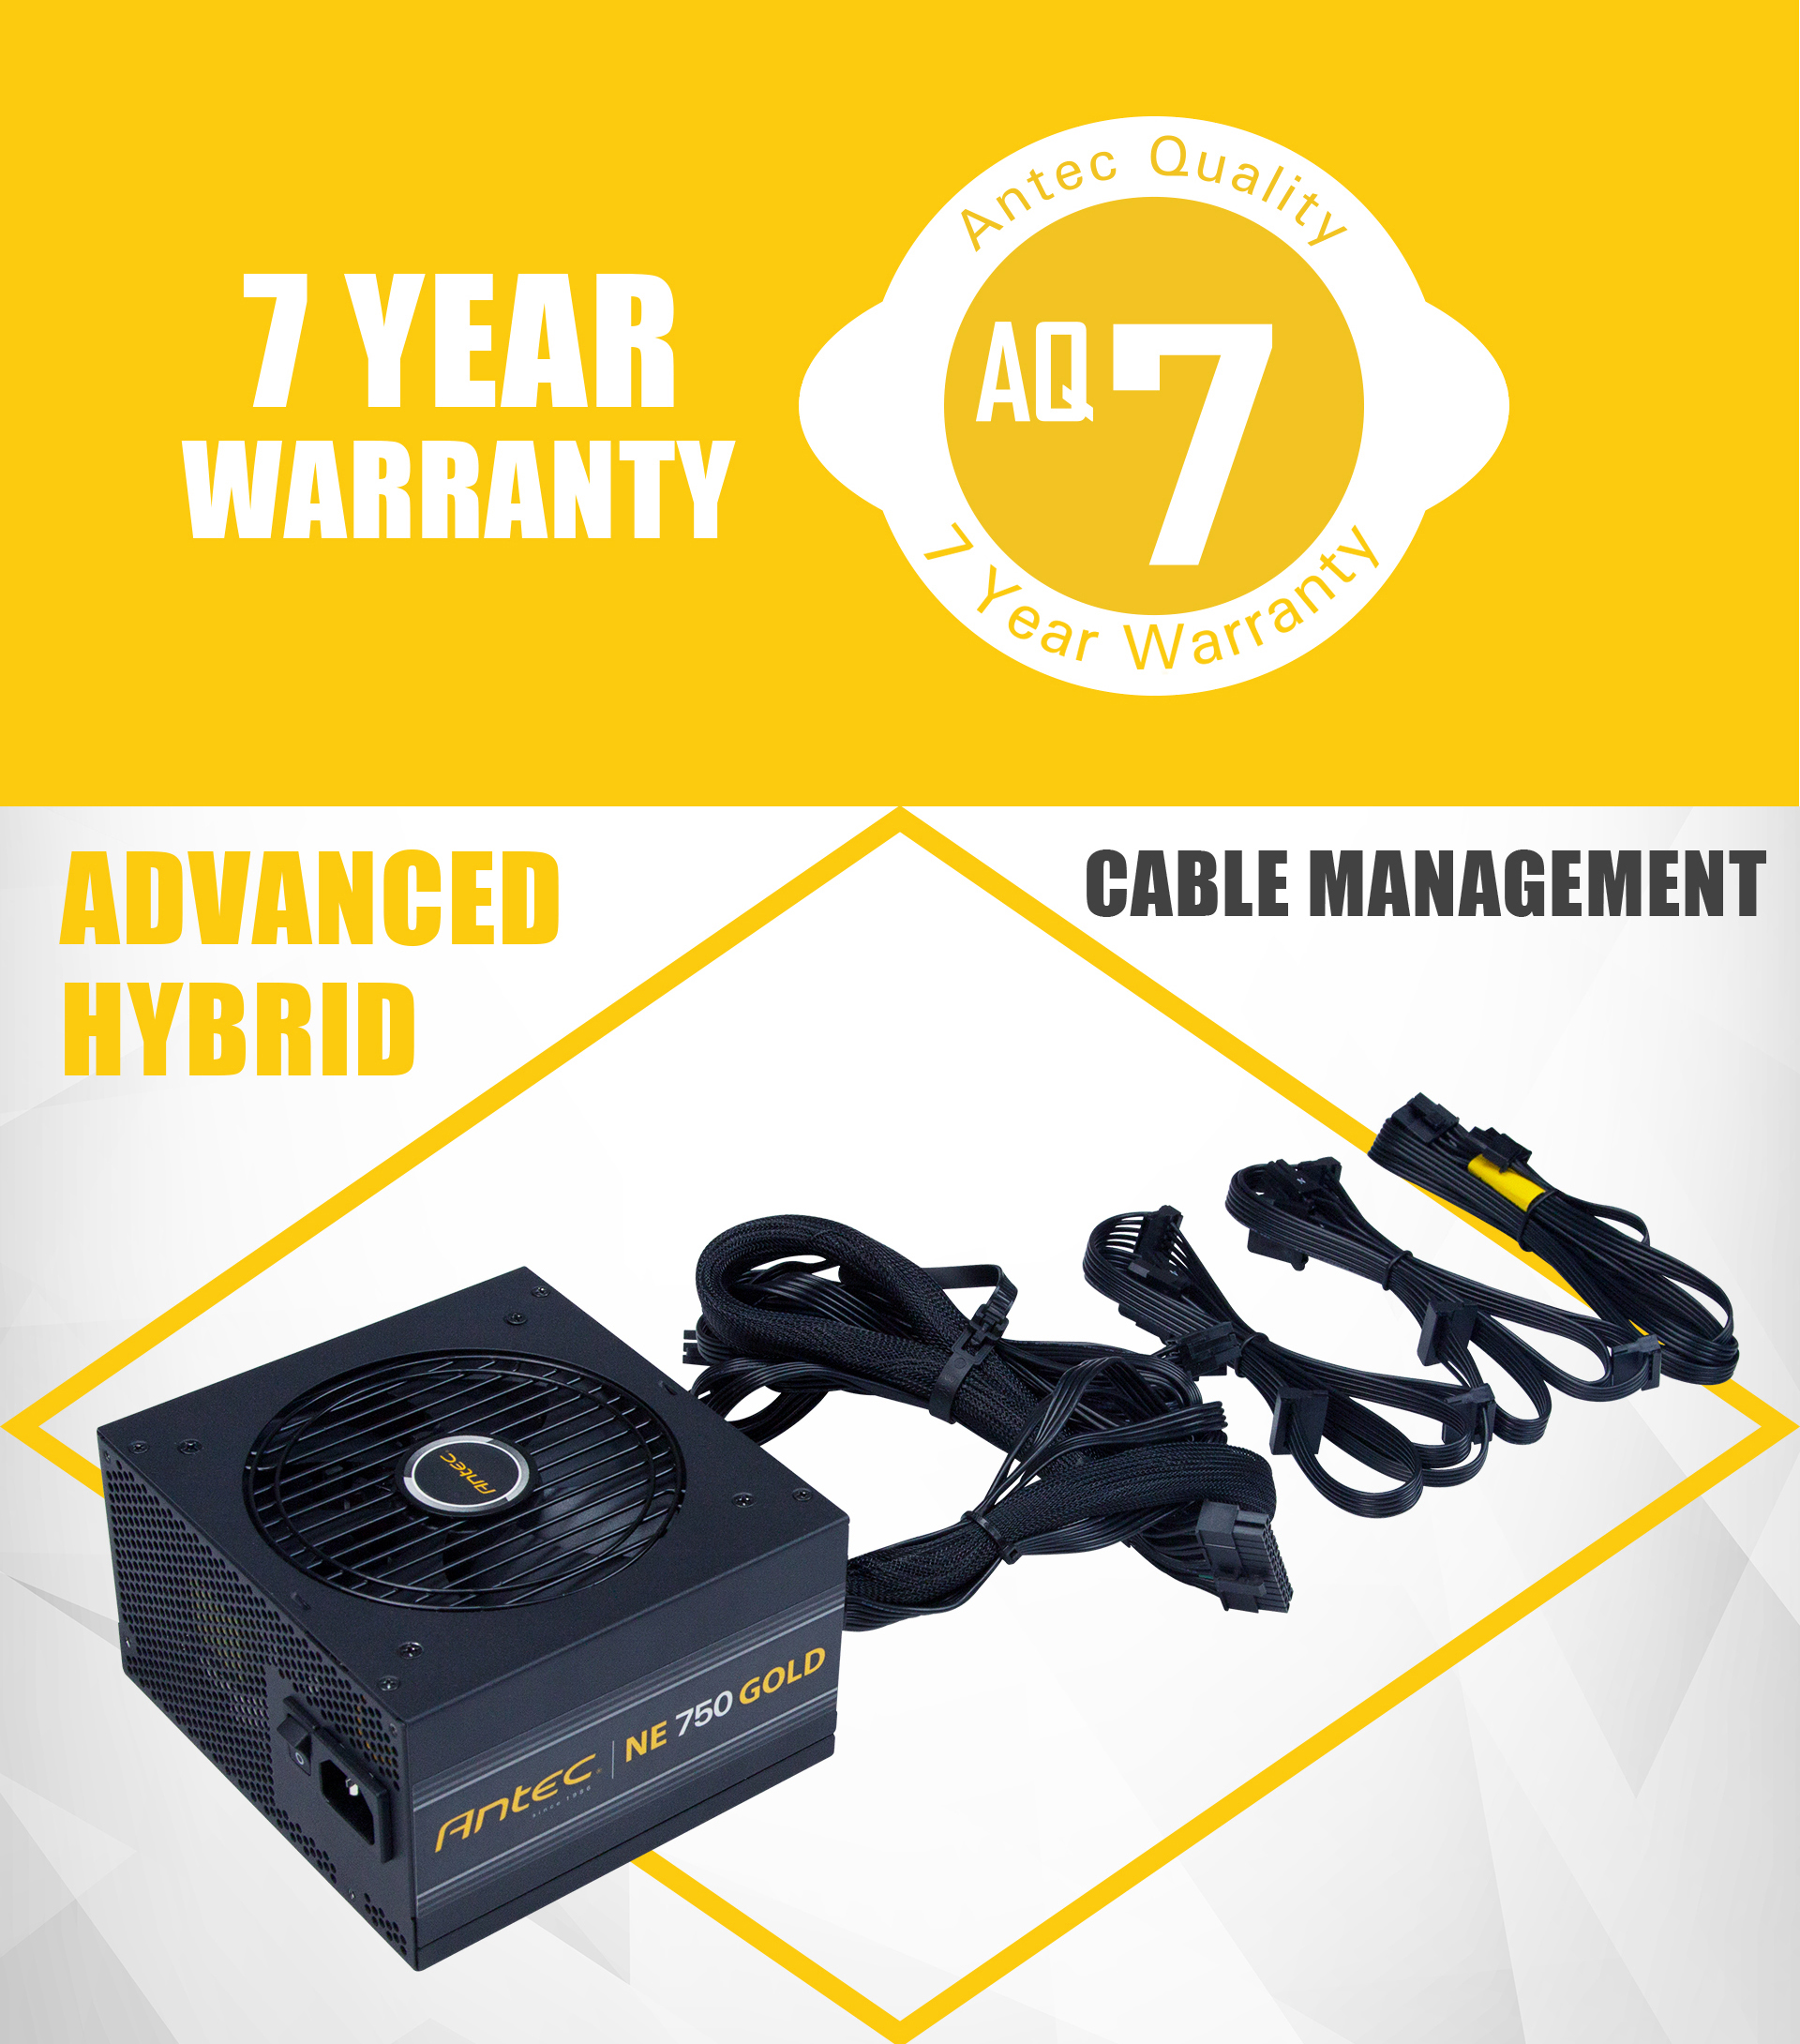 Antec Quality 7-Year Warranty Badge and text that reads: 7 YEAR WARRANTY. Below this is another banner with the Antec NeoECO Power Supply Angled Down to the Right Next to Its Cables and Text That Reads: ADVANCED HYBRID - CABLE MANAGEMENT